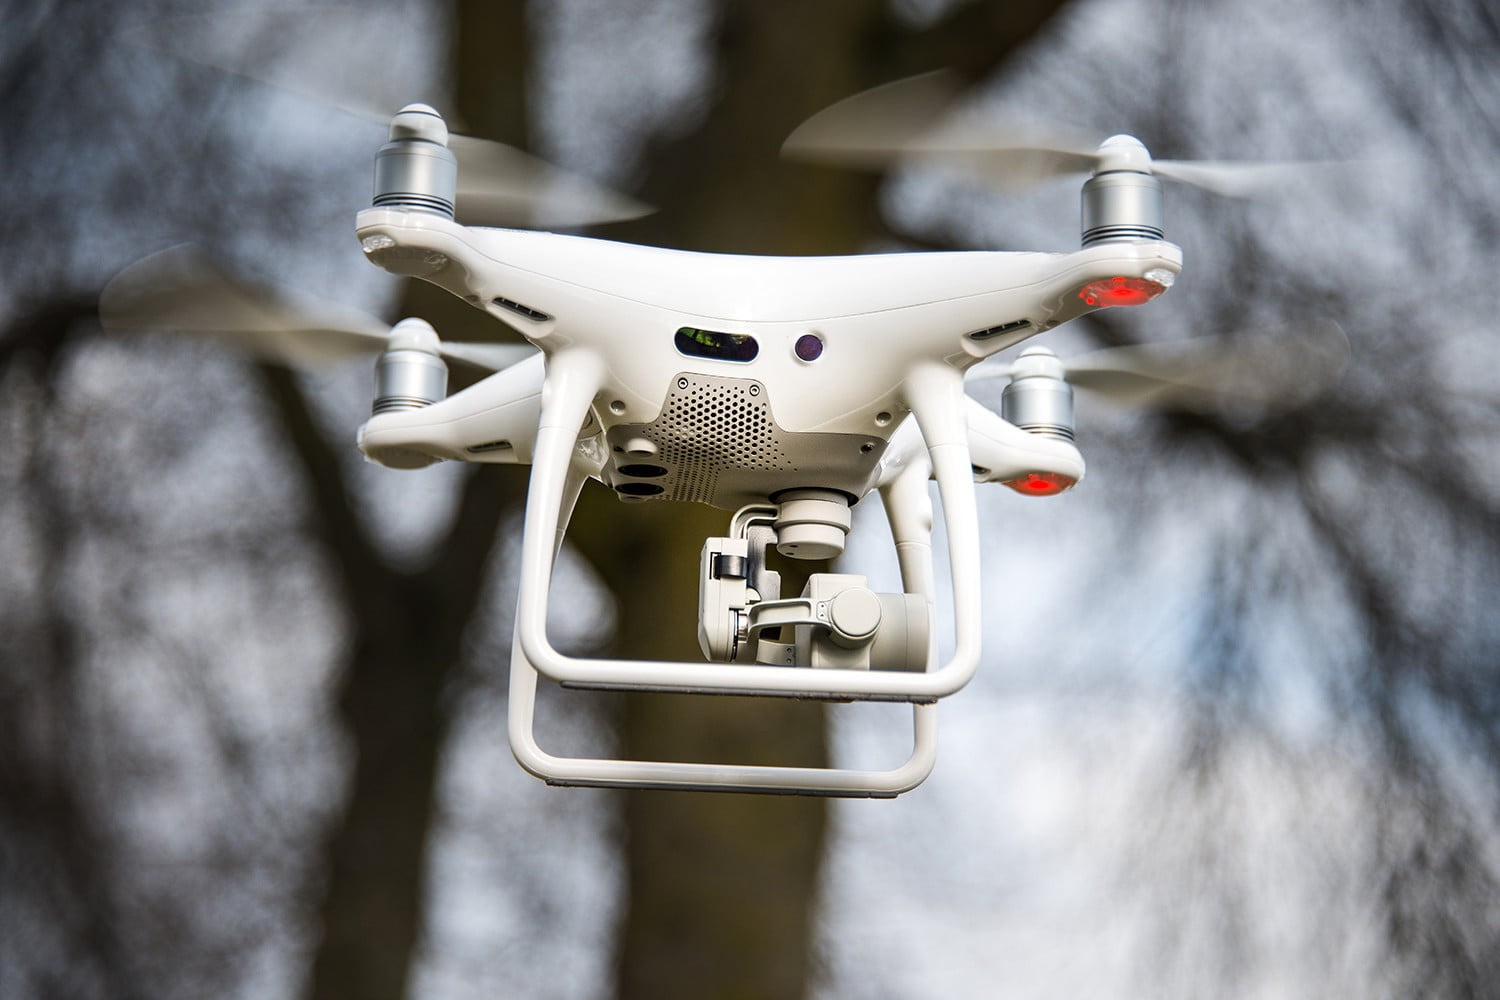 dji quadcopter with camera with Dji Phantom 4 Pro Review on Matrice 100 as well Drone Cake also Watch as well Arri Alexa Sxt Camera Prores 4k Uhd also Mini Remote Control Quadcopter For Sale.